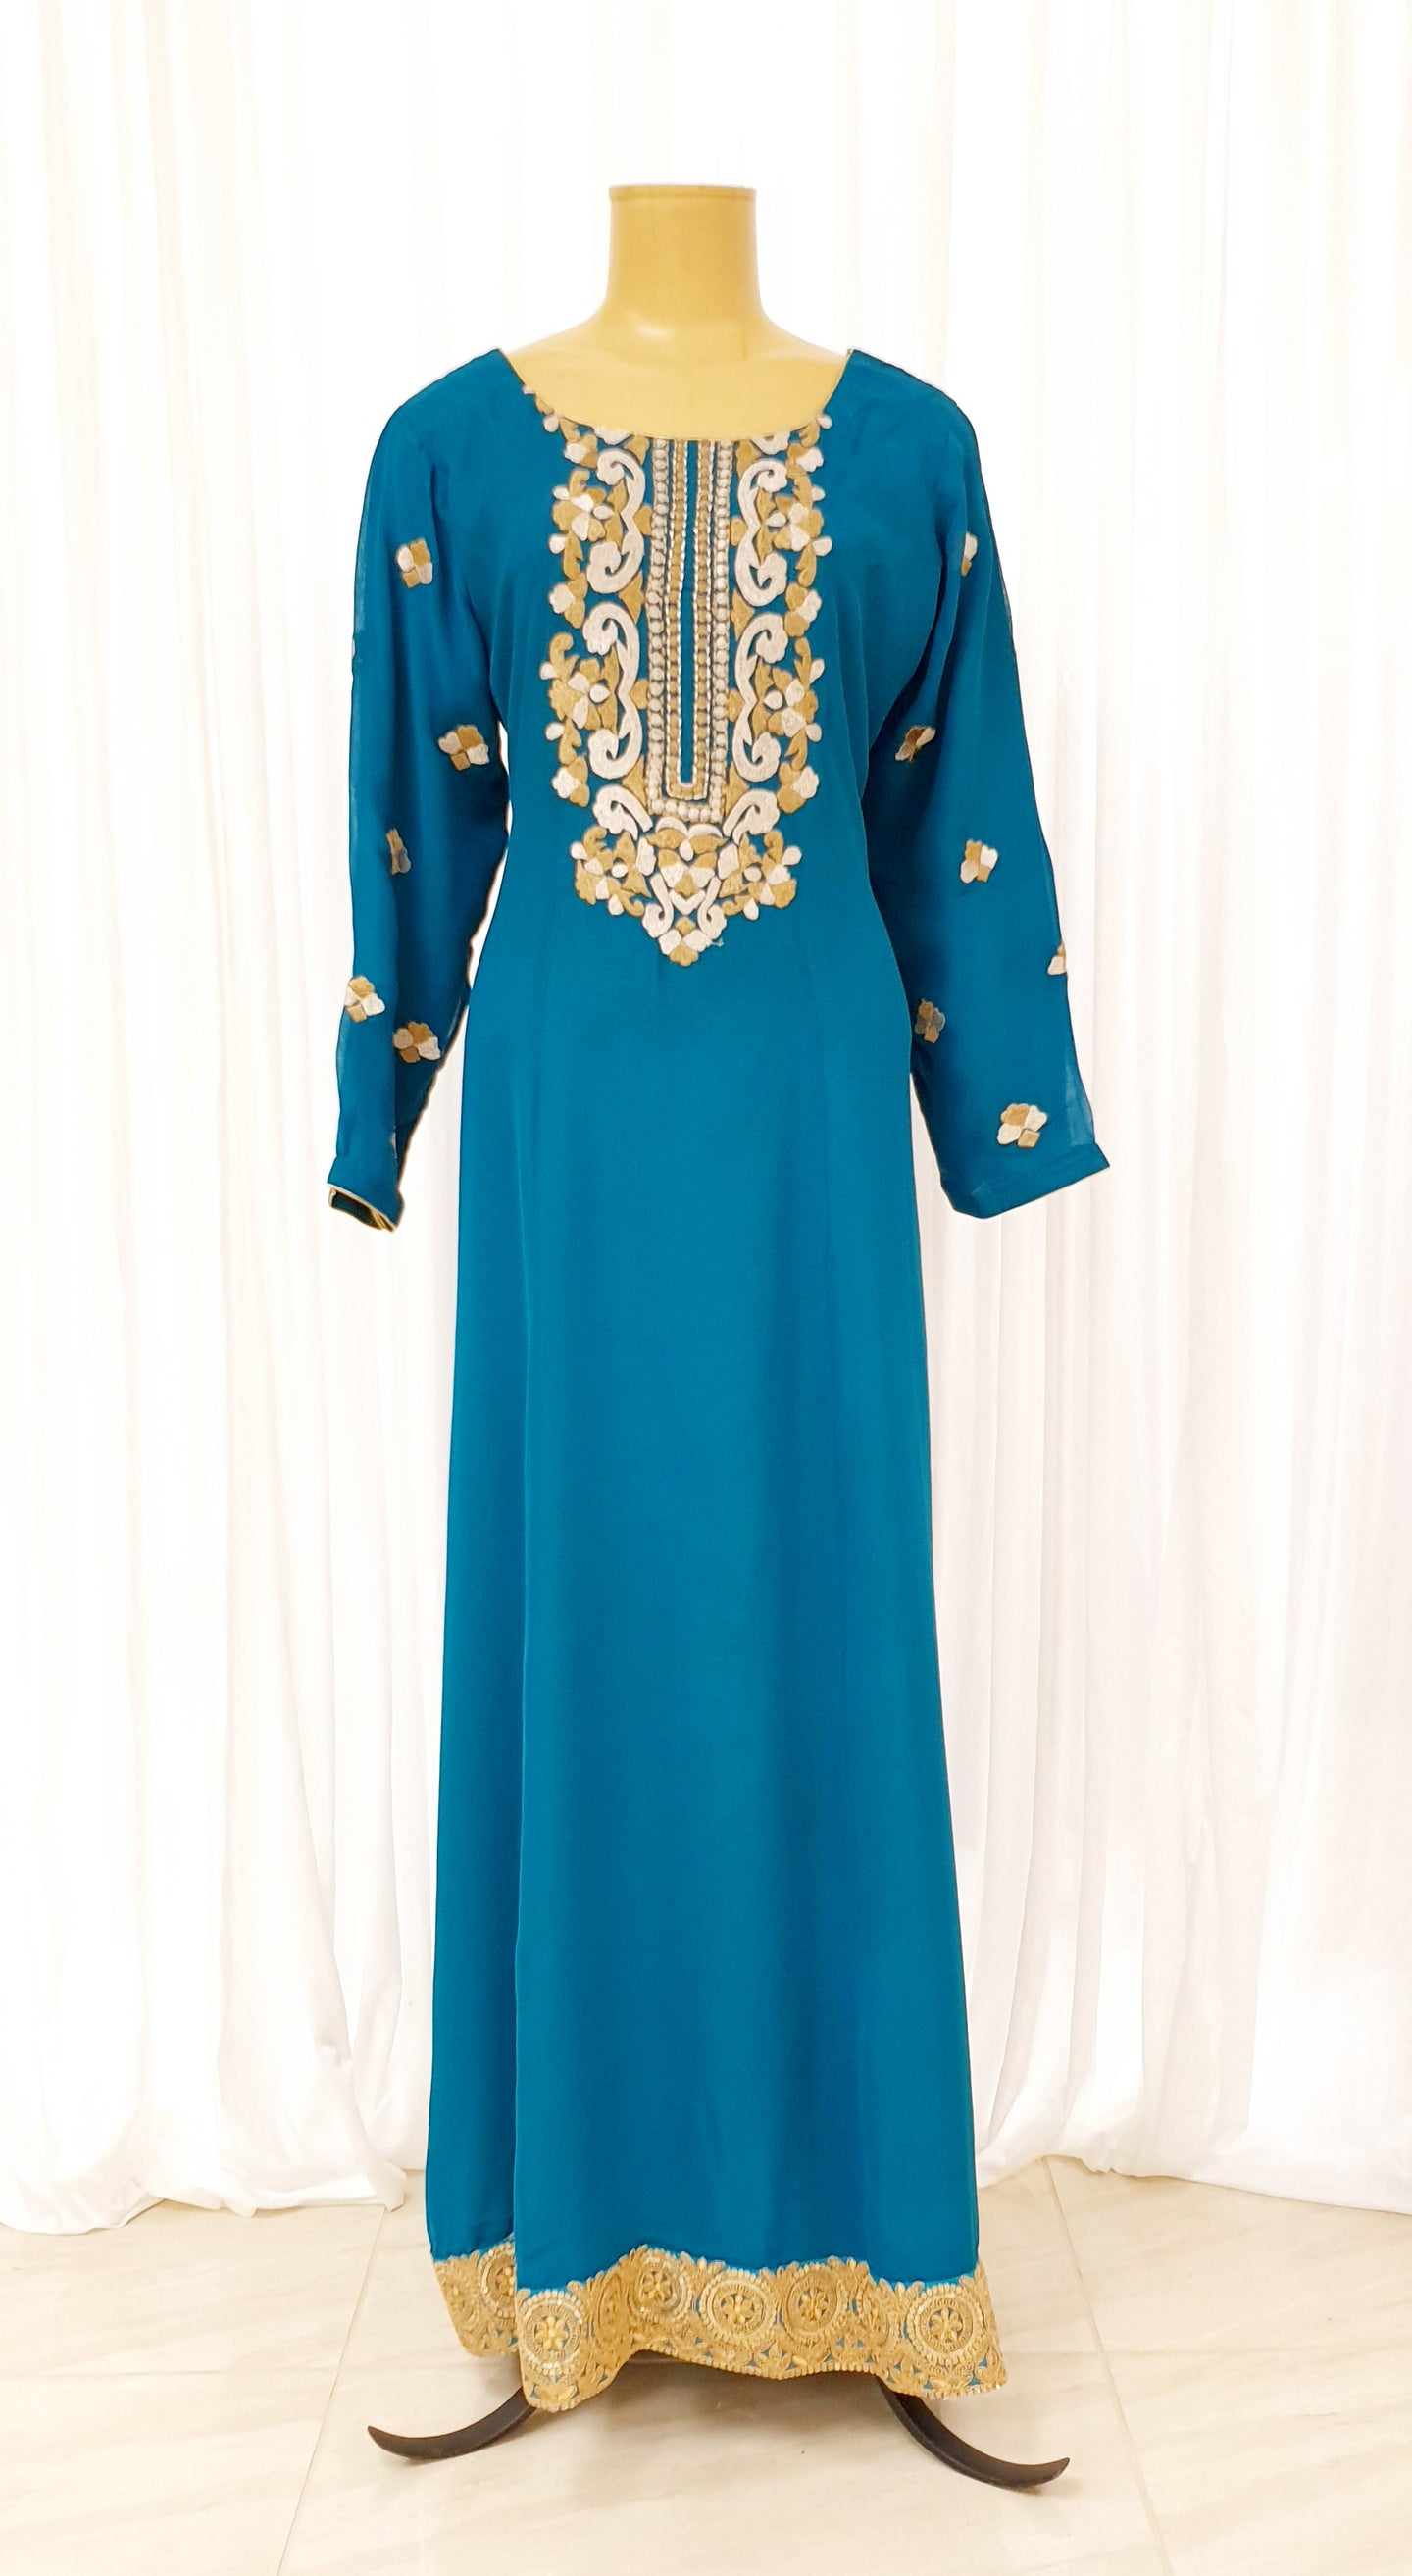 Teal Embroidered Abayah